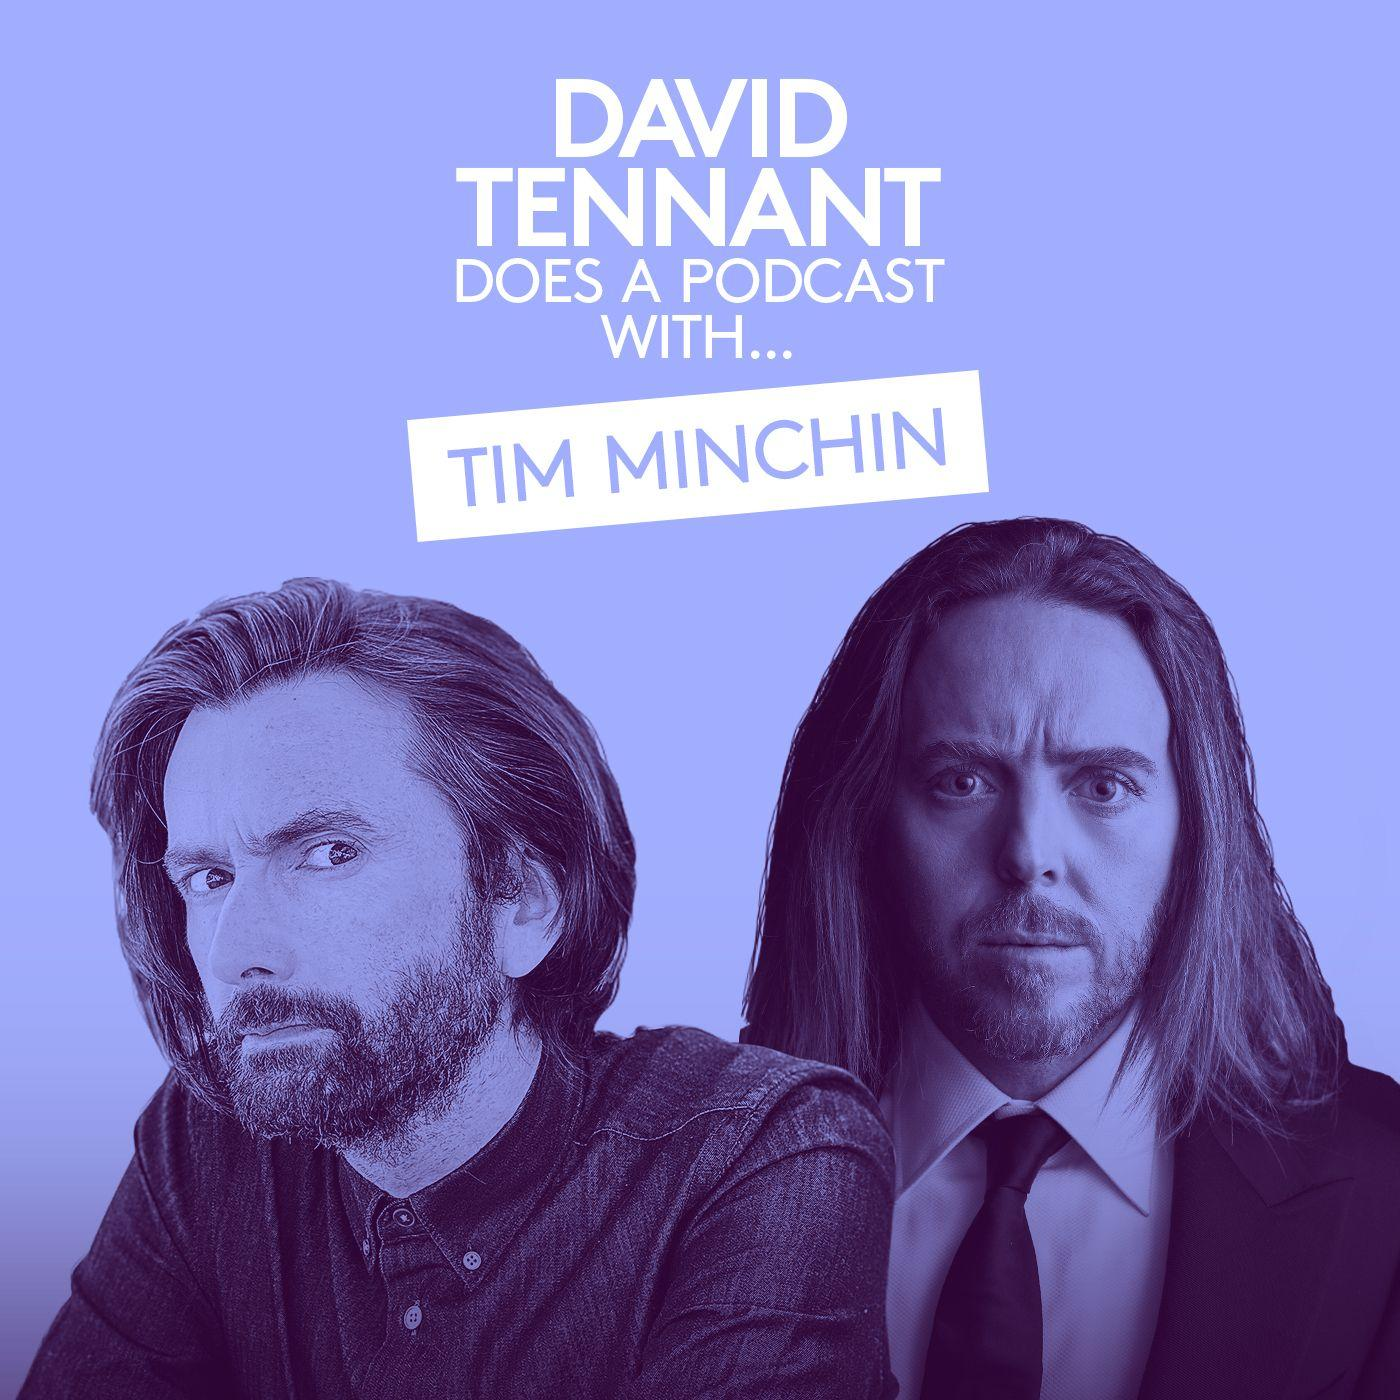 Tim Minchin David Tennant.jpg